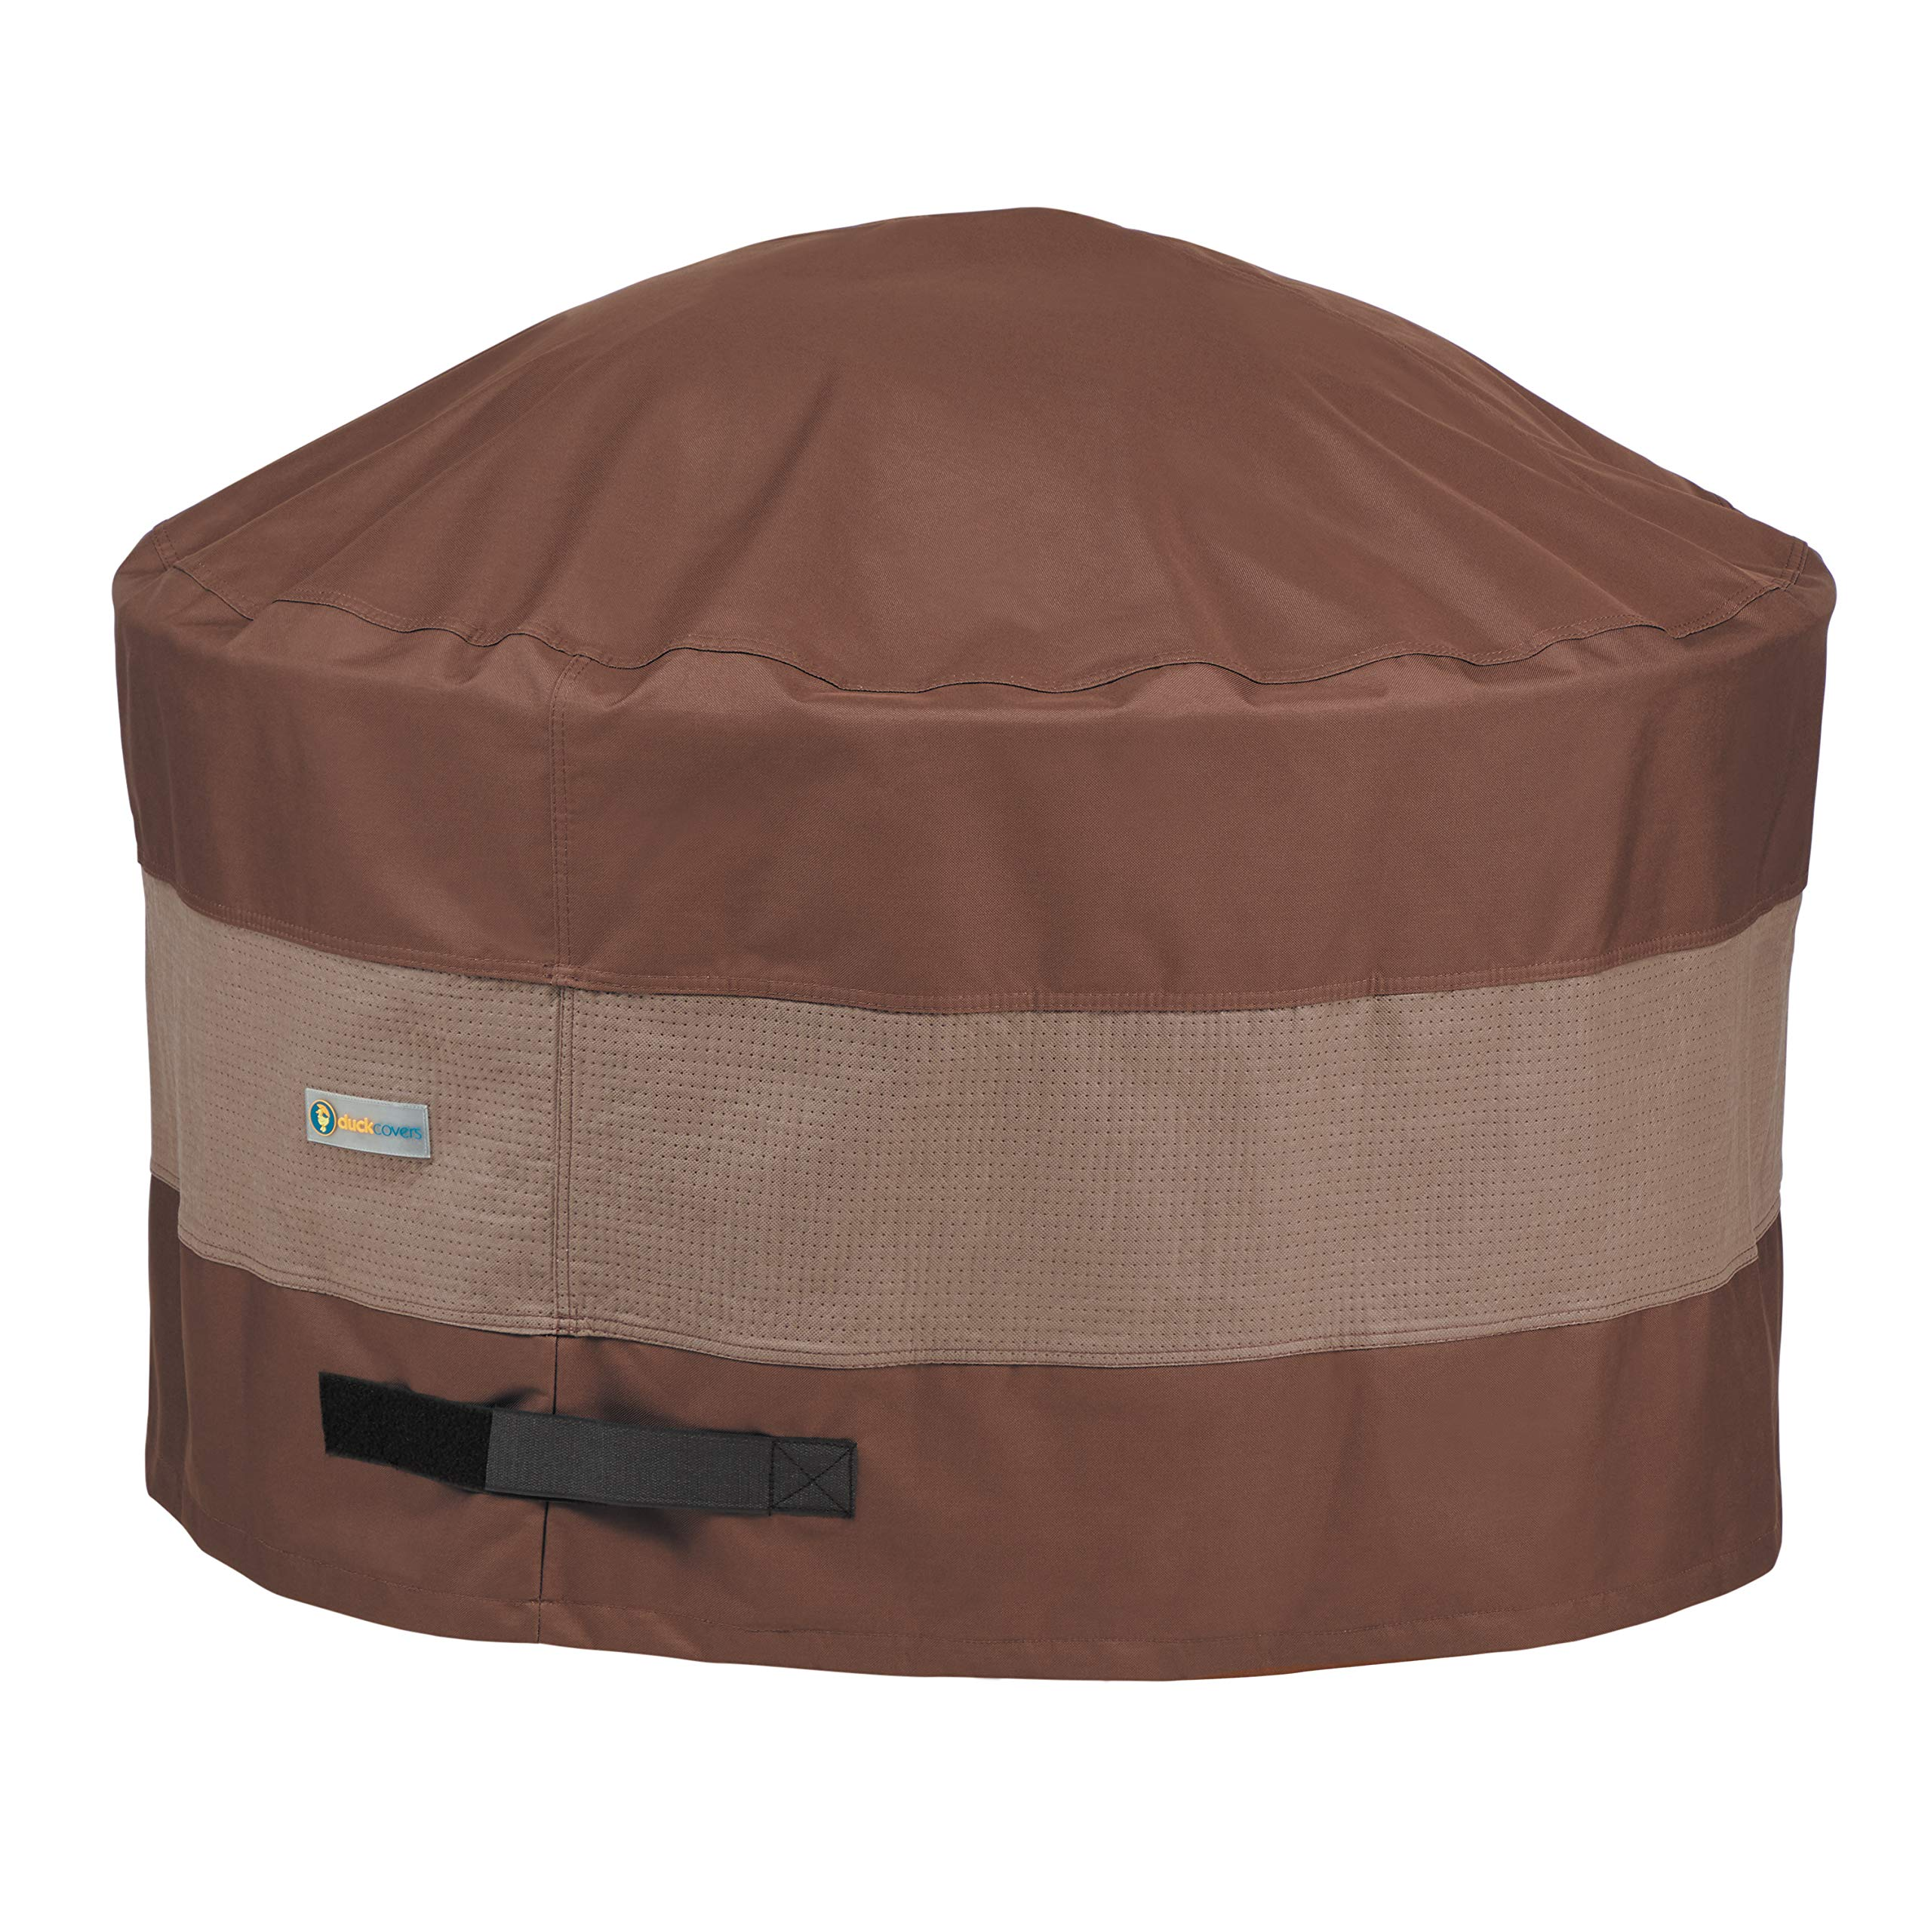 Duck Covers Ultimate Round Fire Pit up to 52'' Diameter by Duck Covers